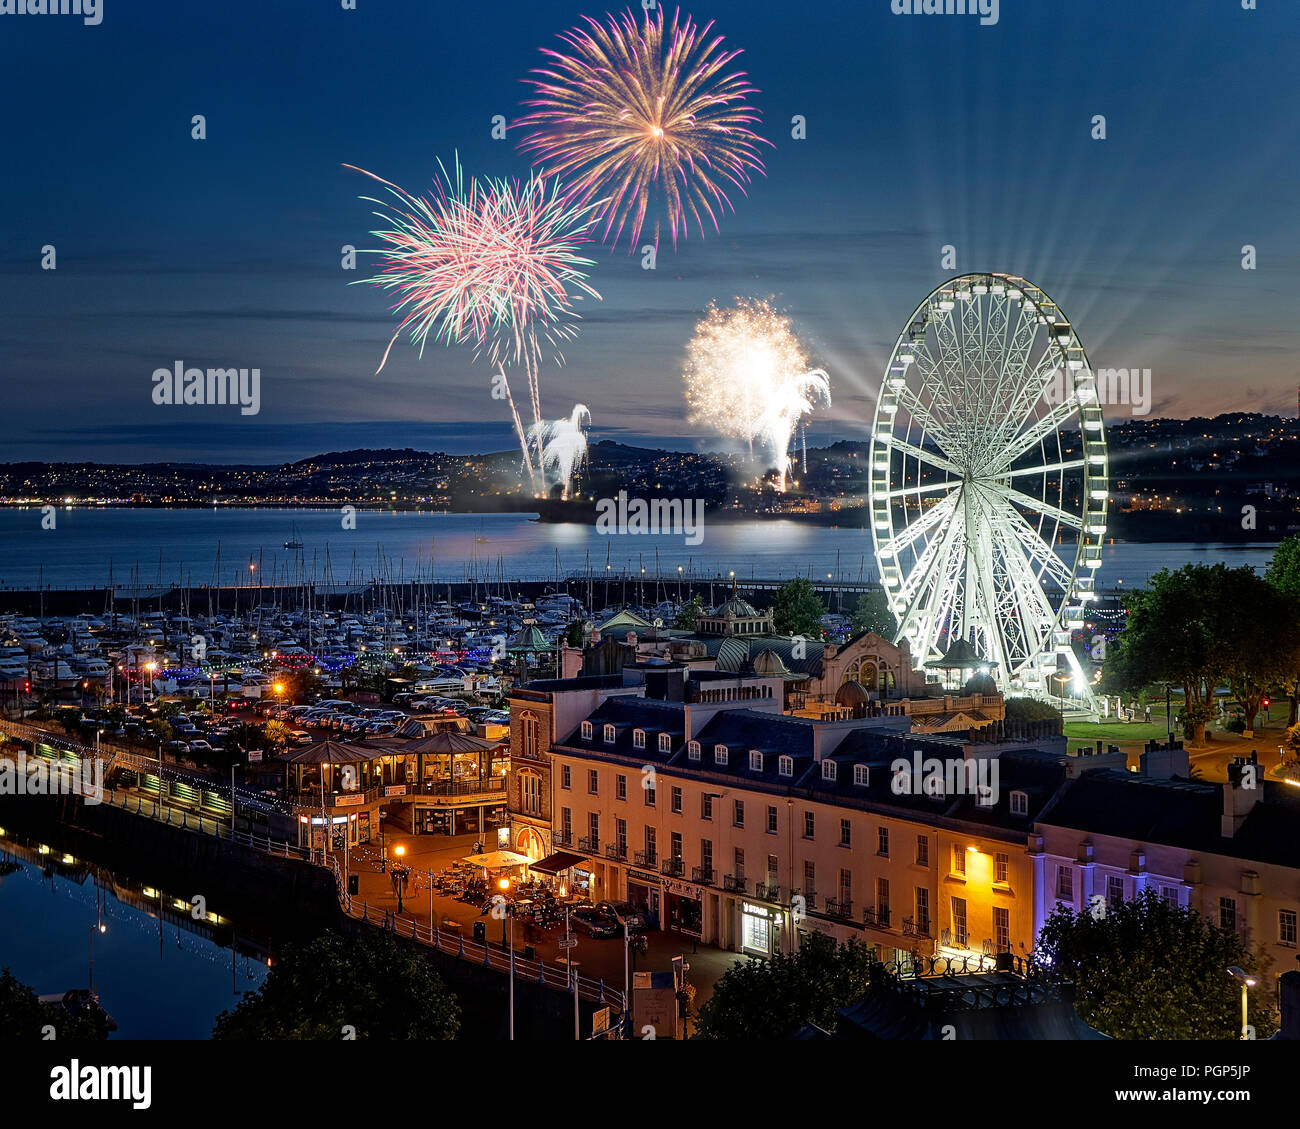 GB - DEVON: Fuochi d'artificio su Torquay Immagini Stock